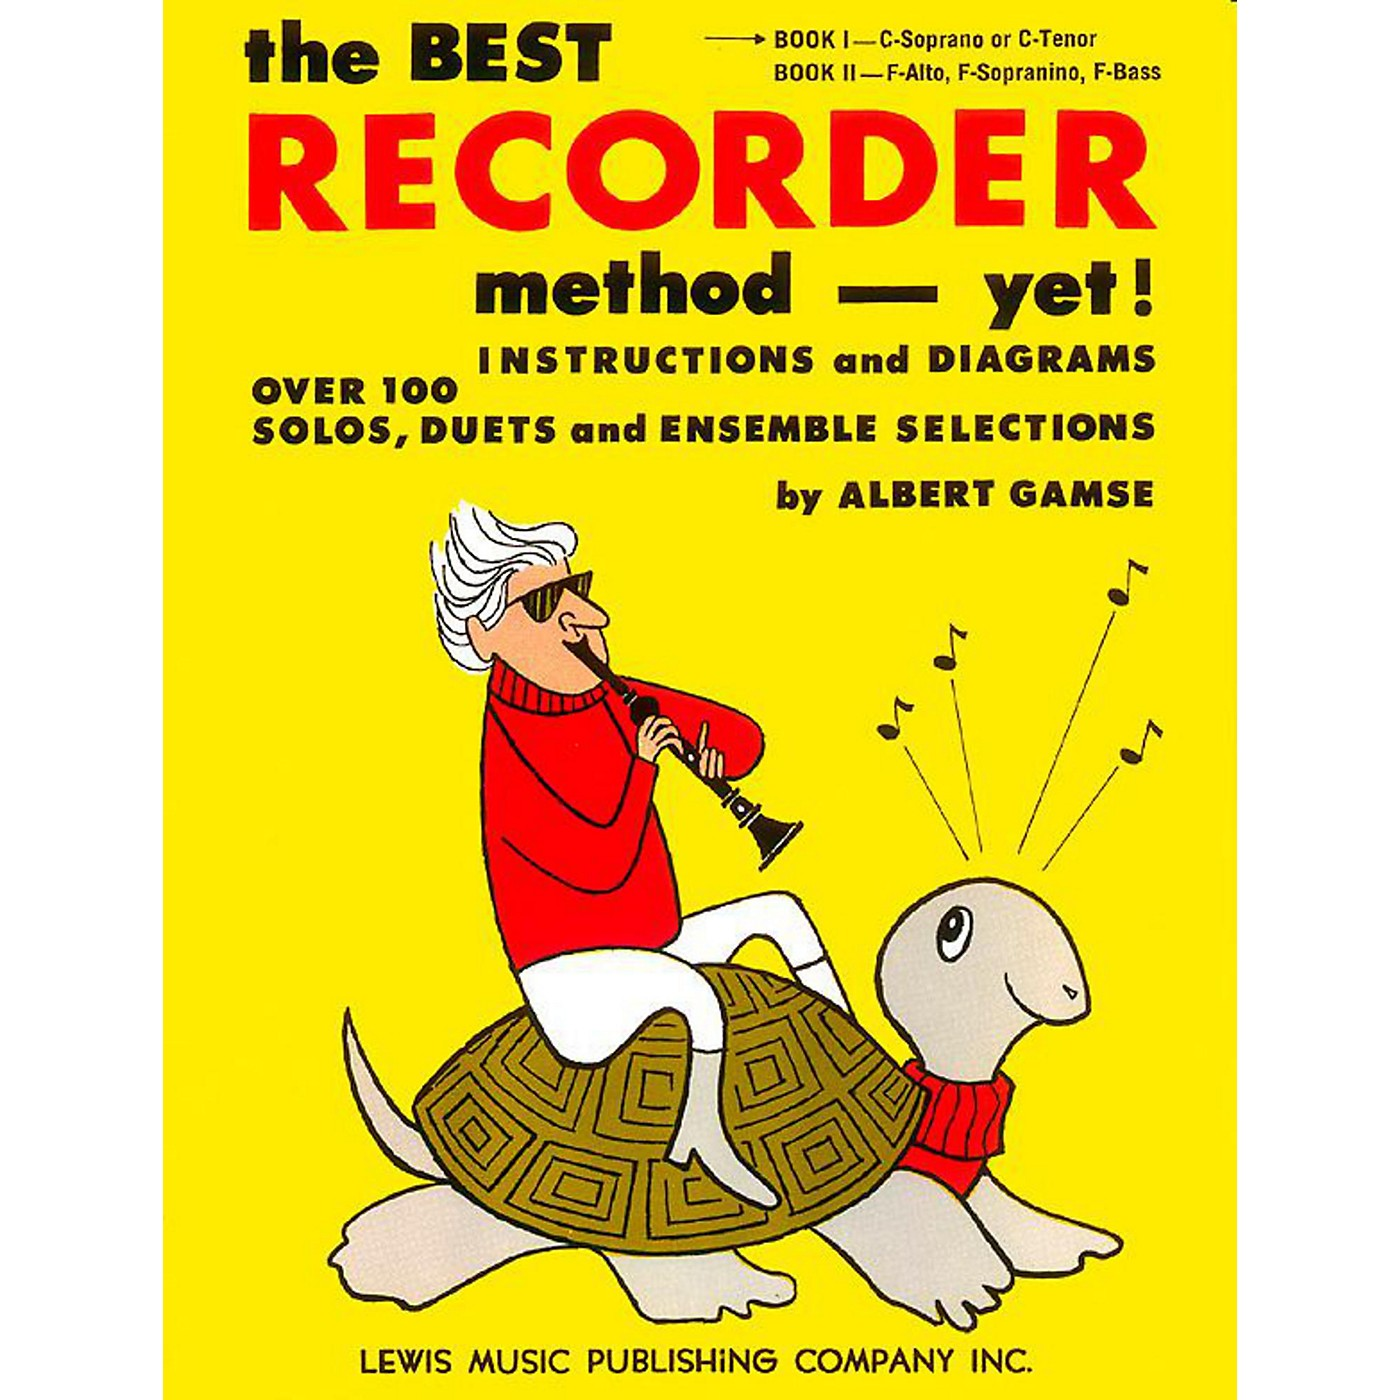 Music Sales The Best Recorder Method Yet Book 1 Soprano thumbnail